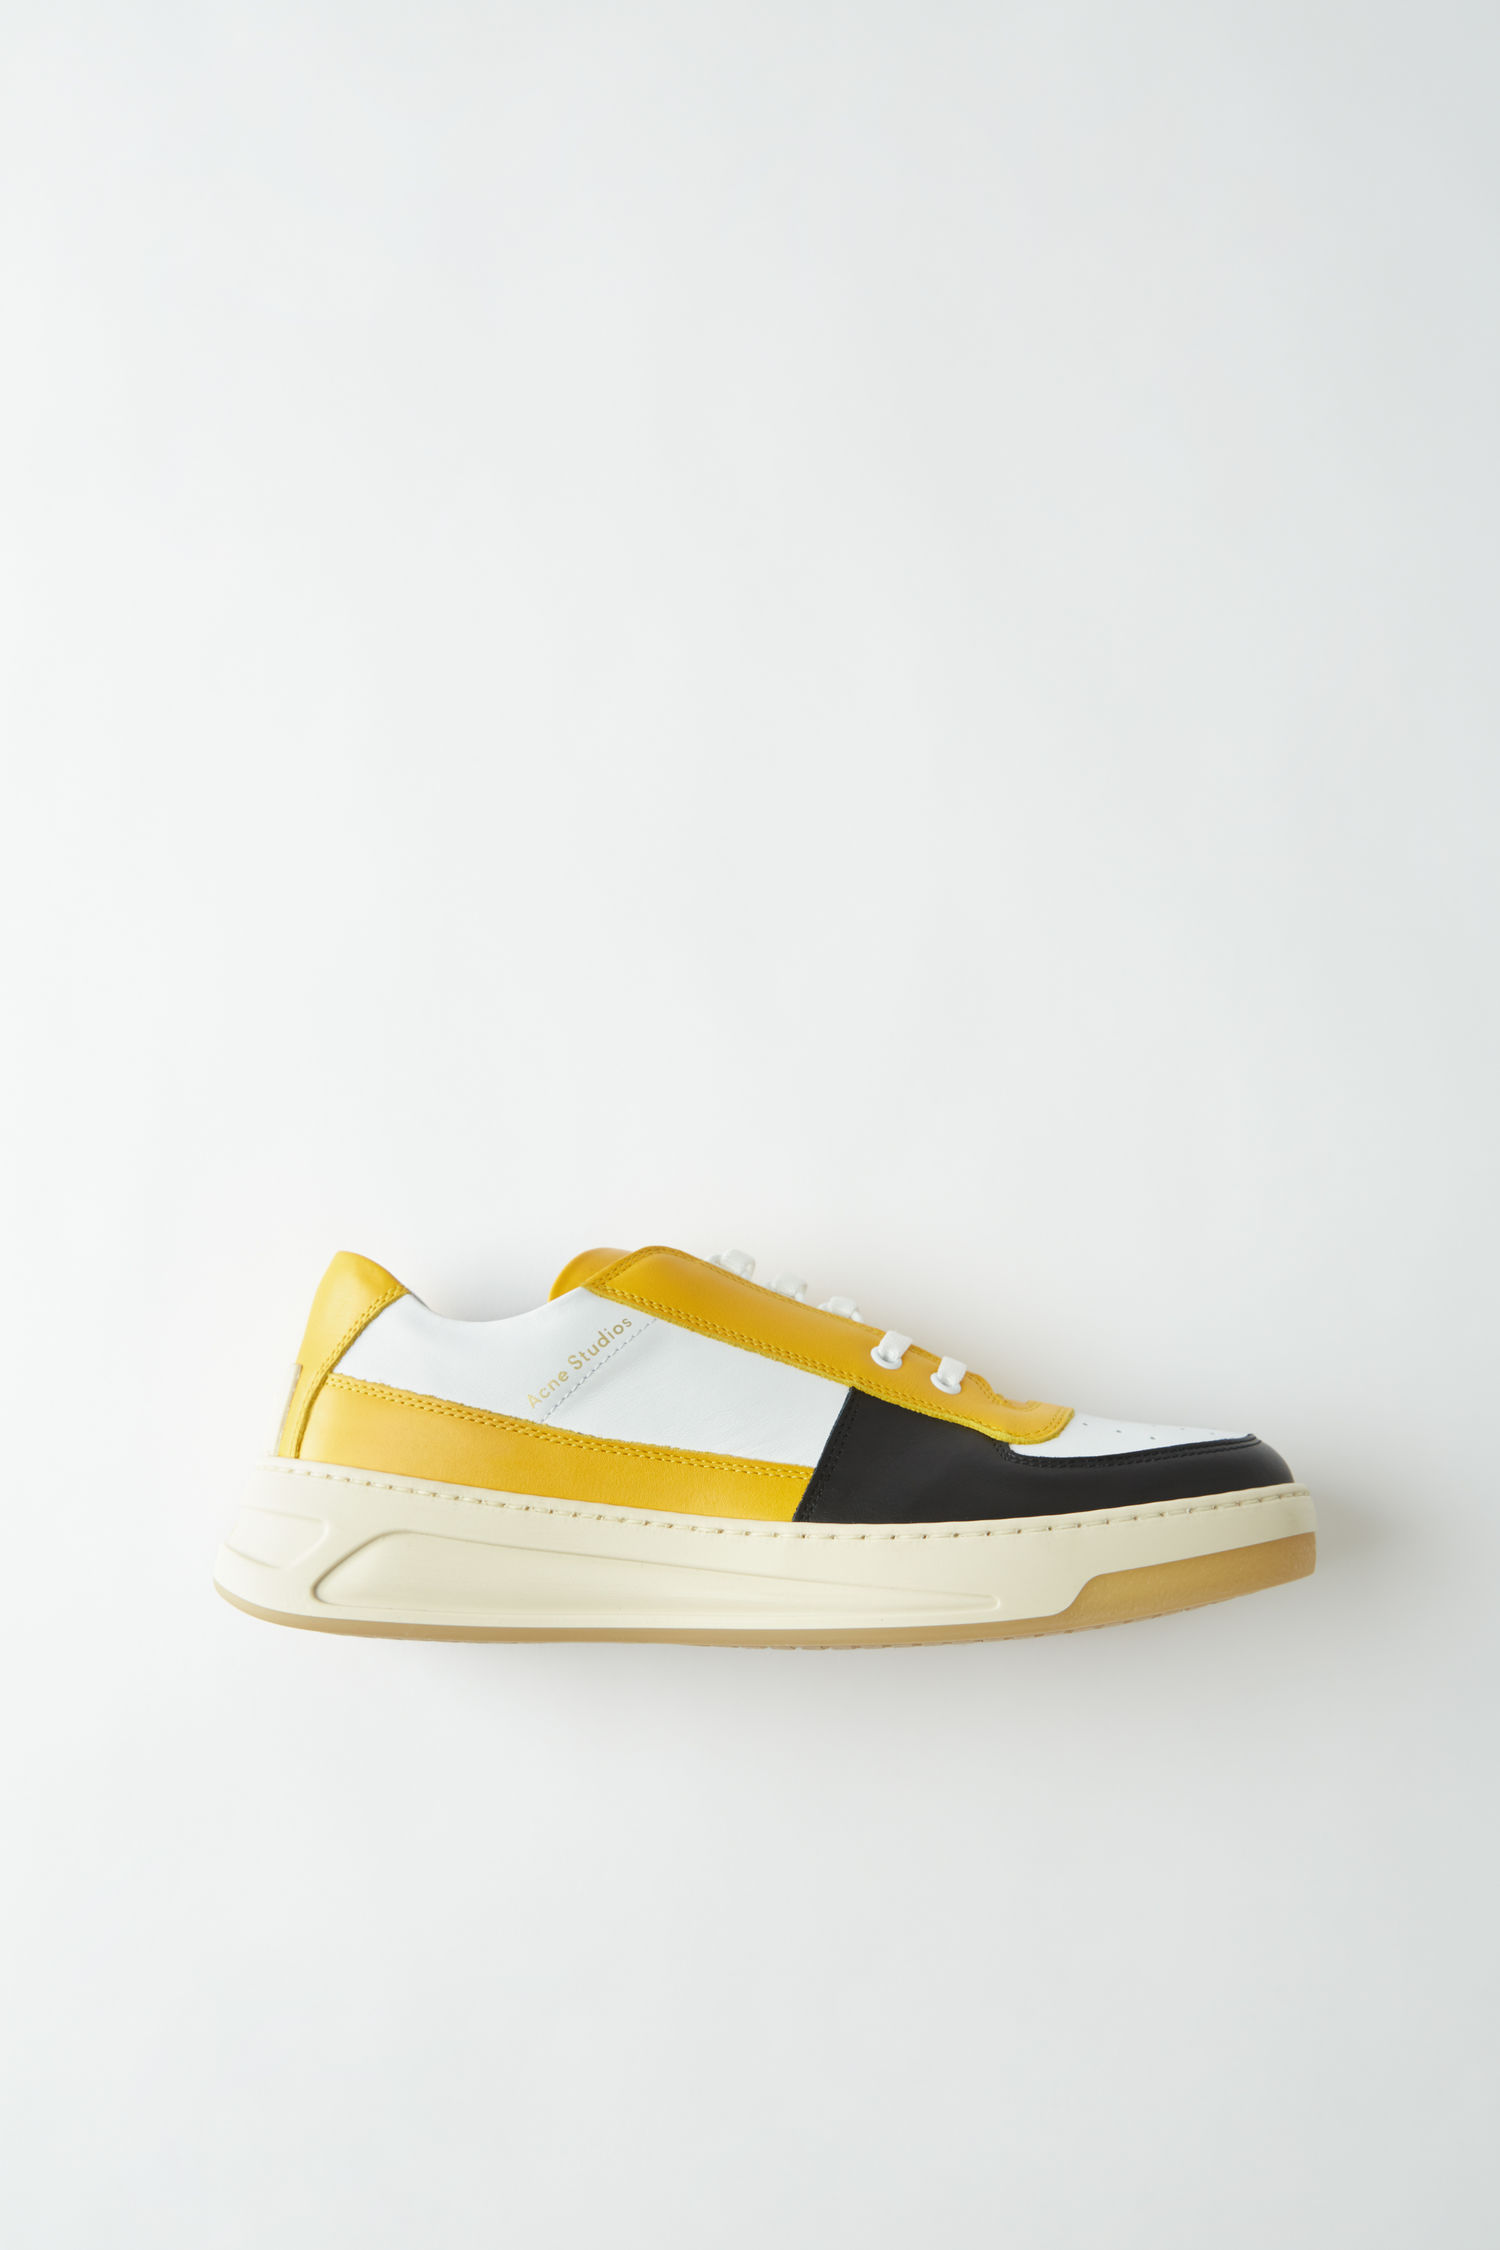 Acne Studios Perey Lace Up in Mix yellow multi (€340)